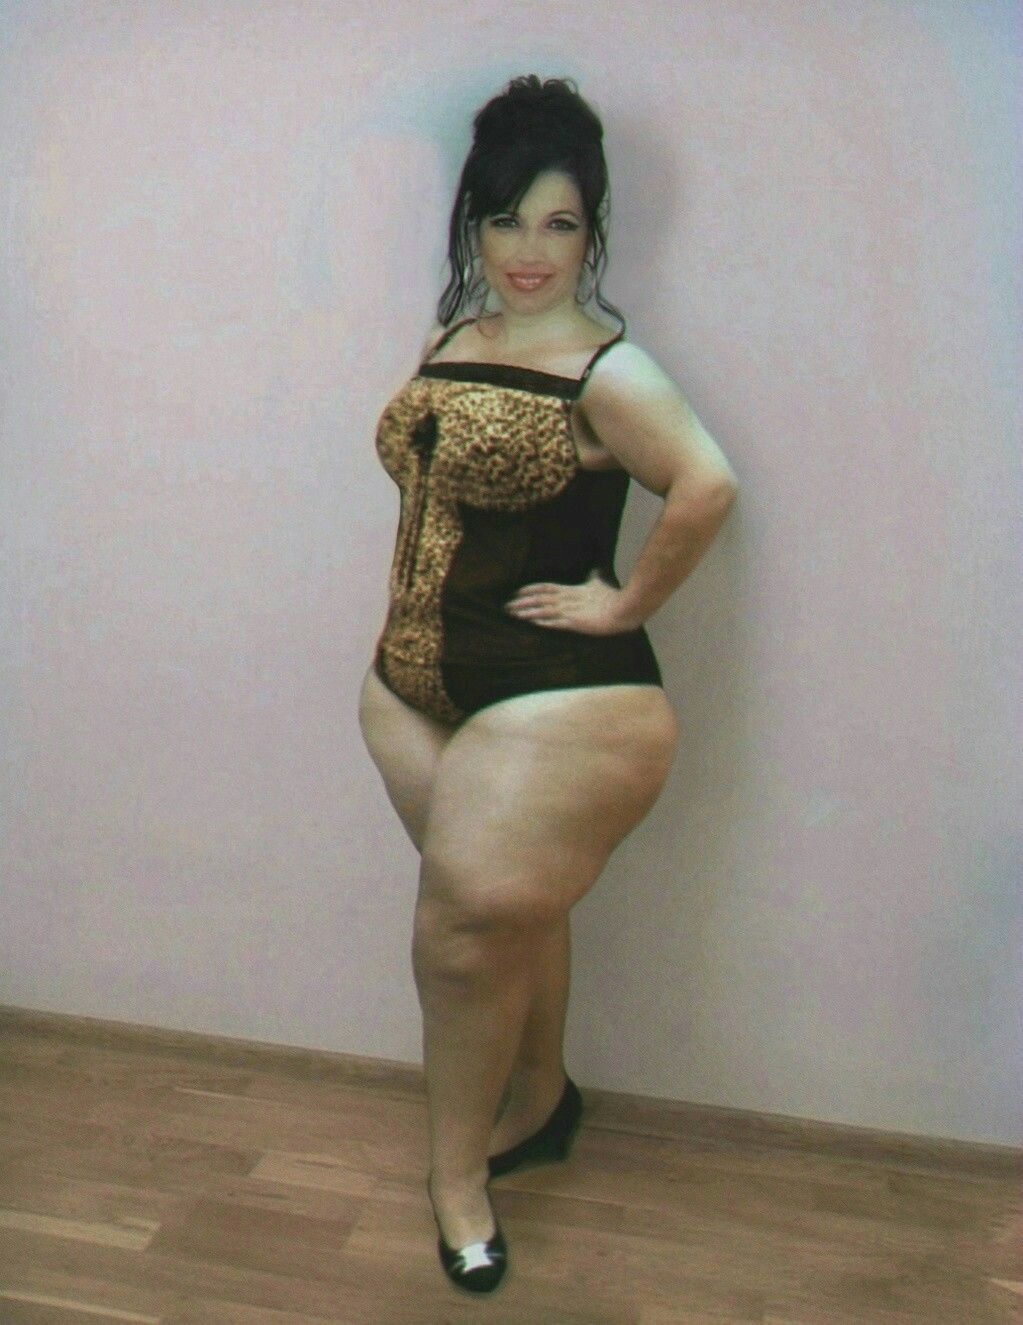 Thick bbw thighs and legs